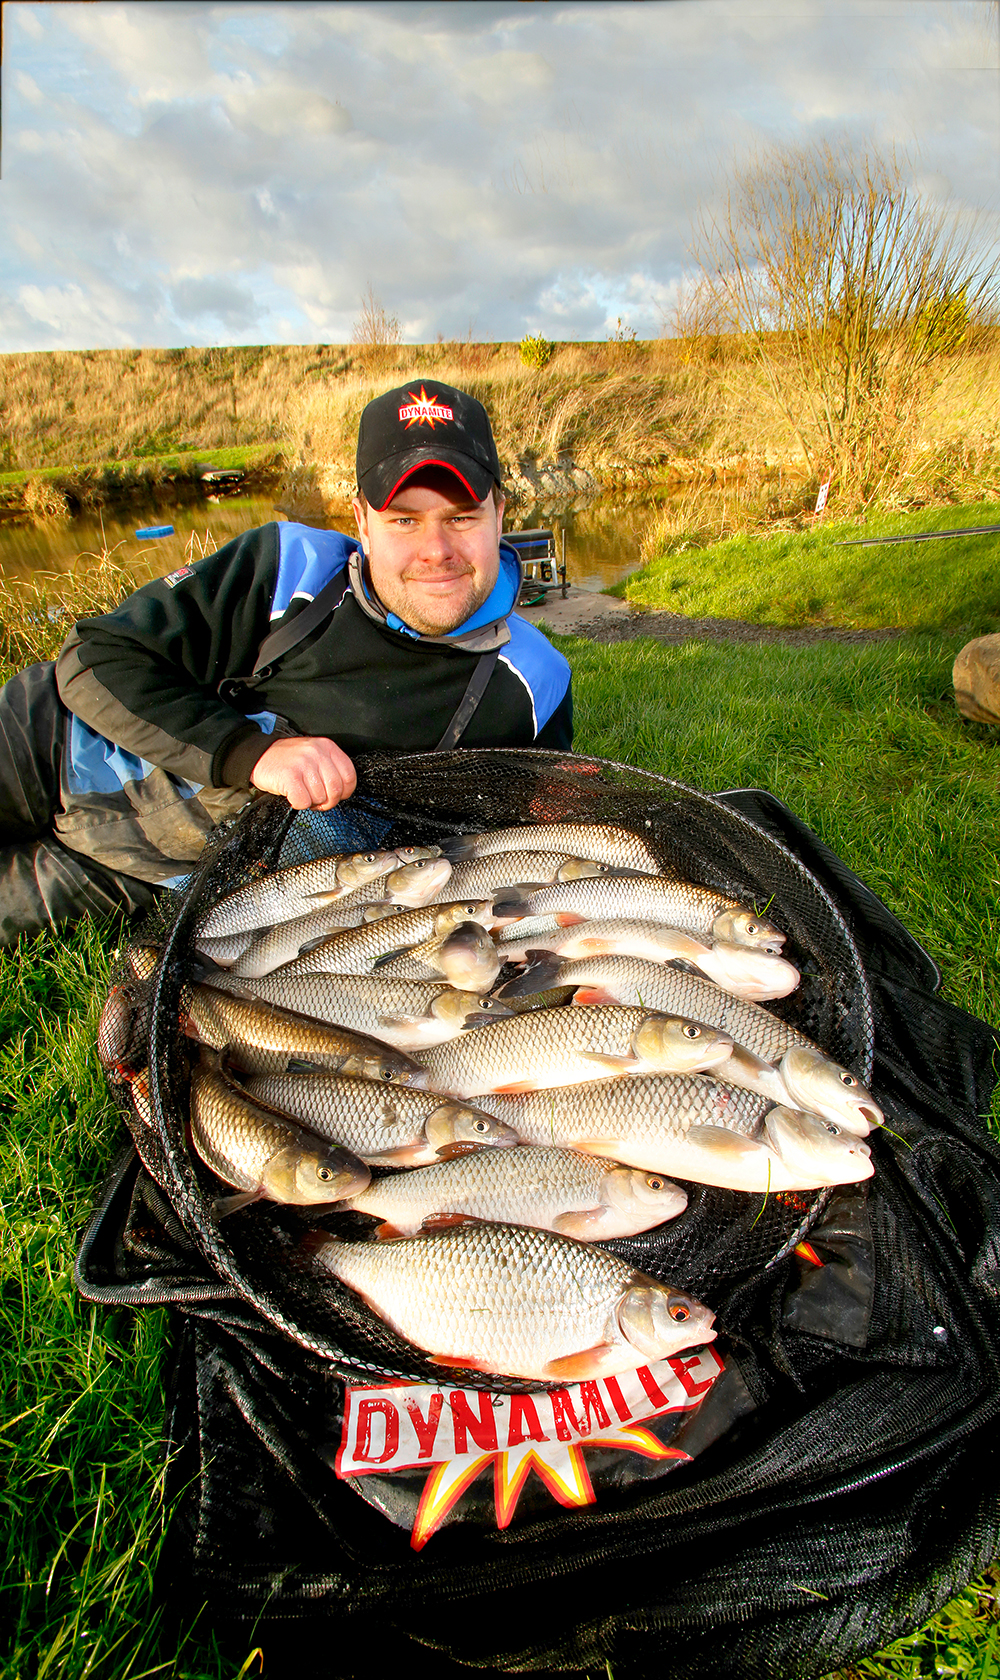 Essex carp water's offer to keen roach anglers — Angling Times